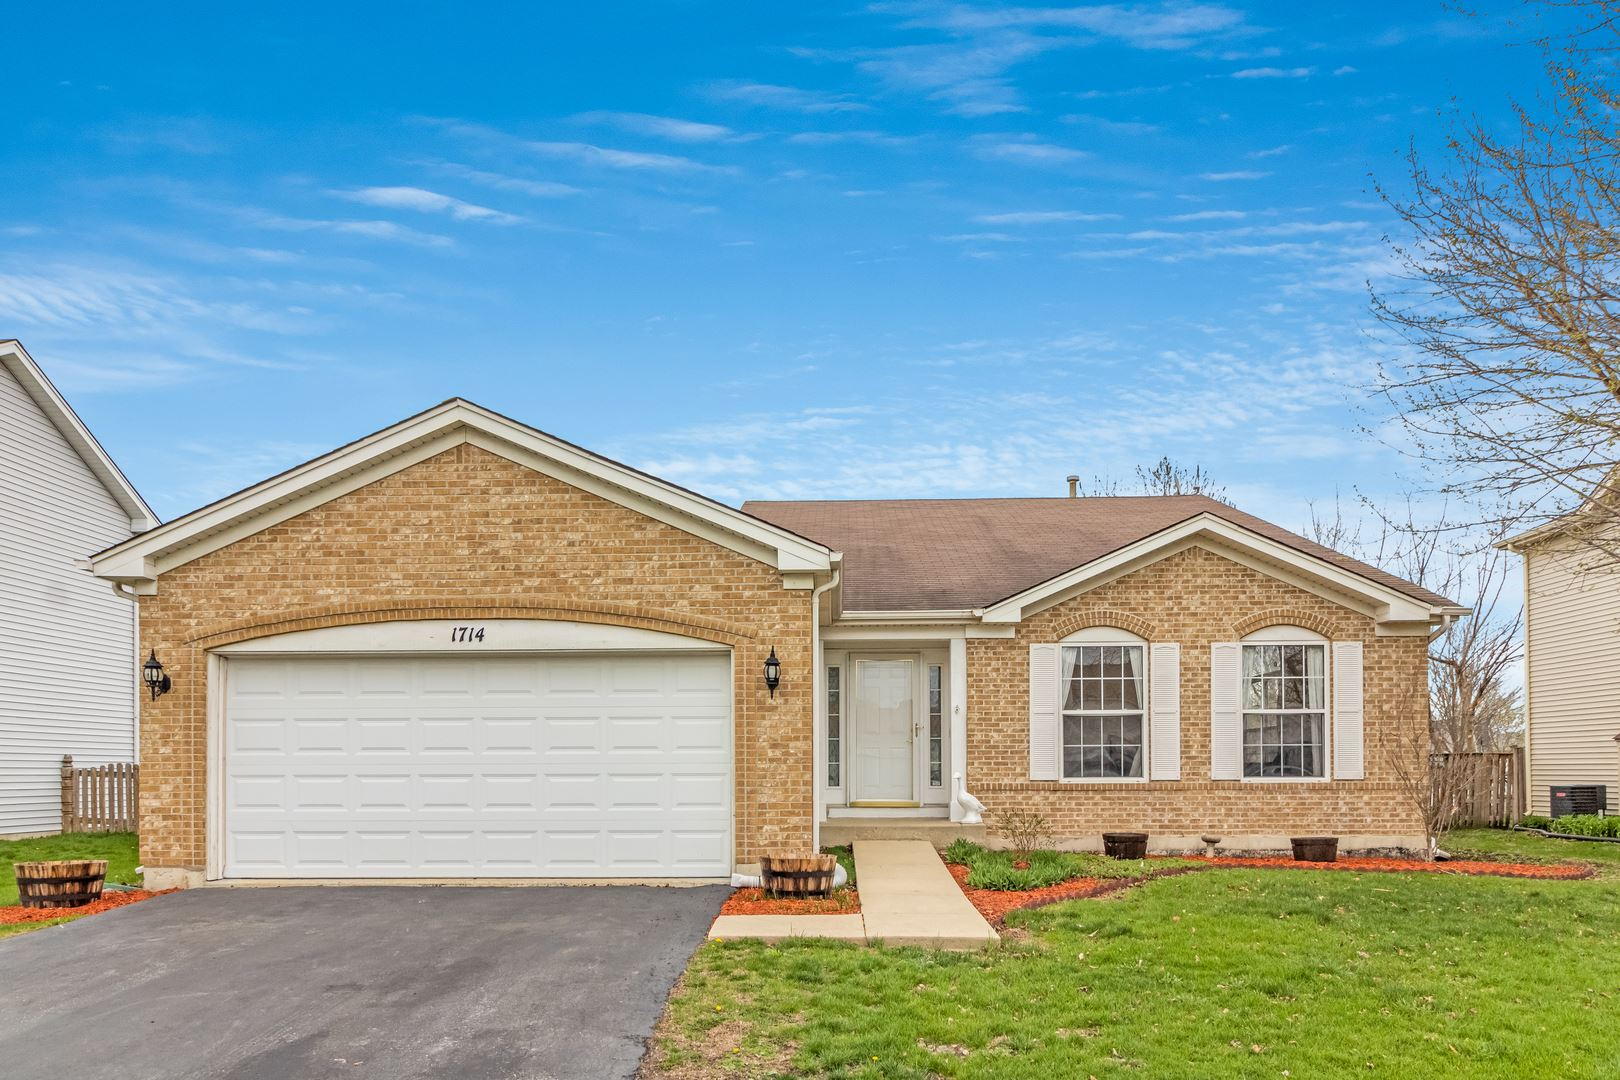 Photo of 1714 Courtwright Drive, Plainfield, IL 60586 (MLS # 11053492)